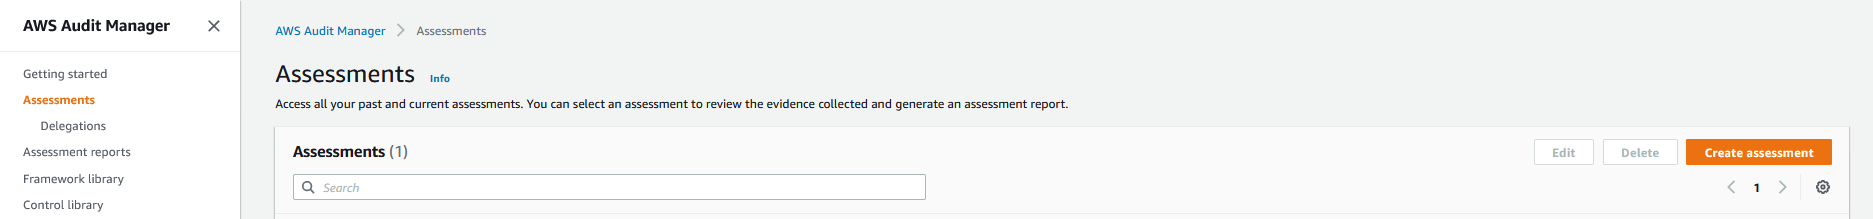 The Assessments page includes a search field you can use to access past and current assessments. It also includes Edit, Delete, and Create assessment buttons.